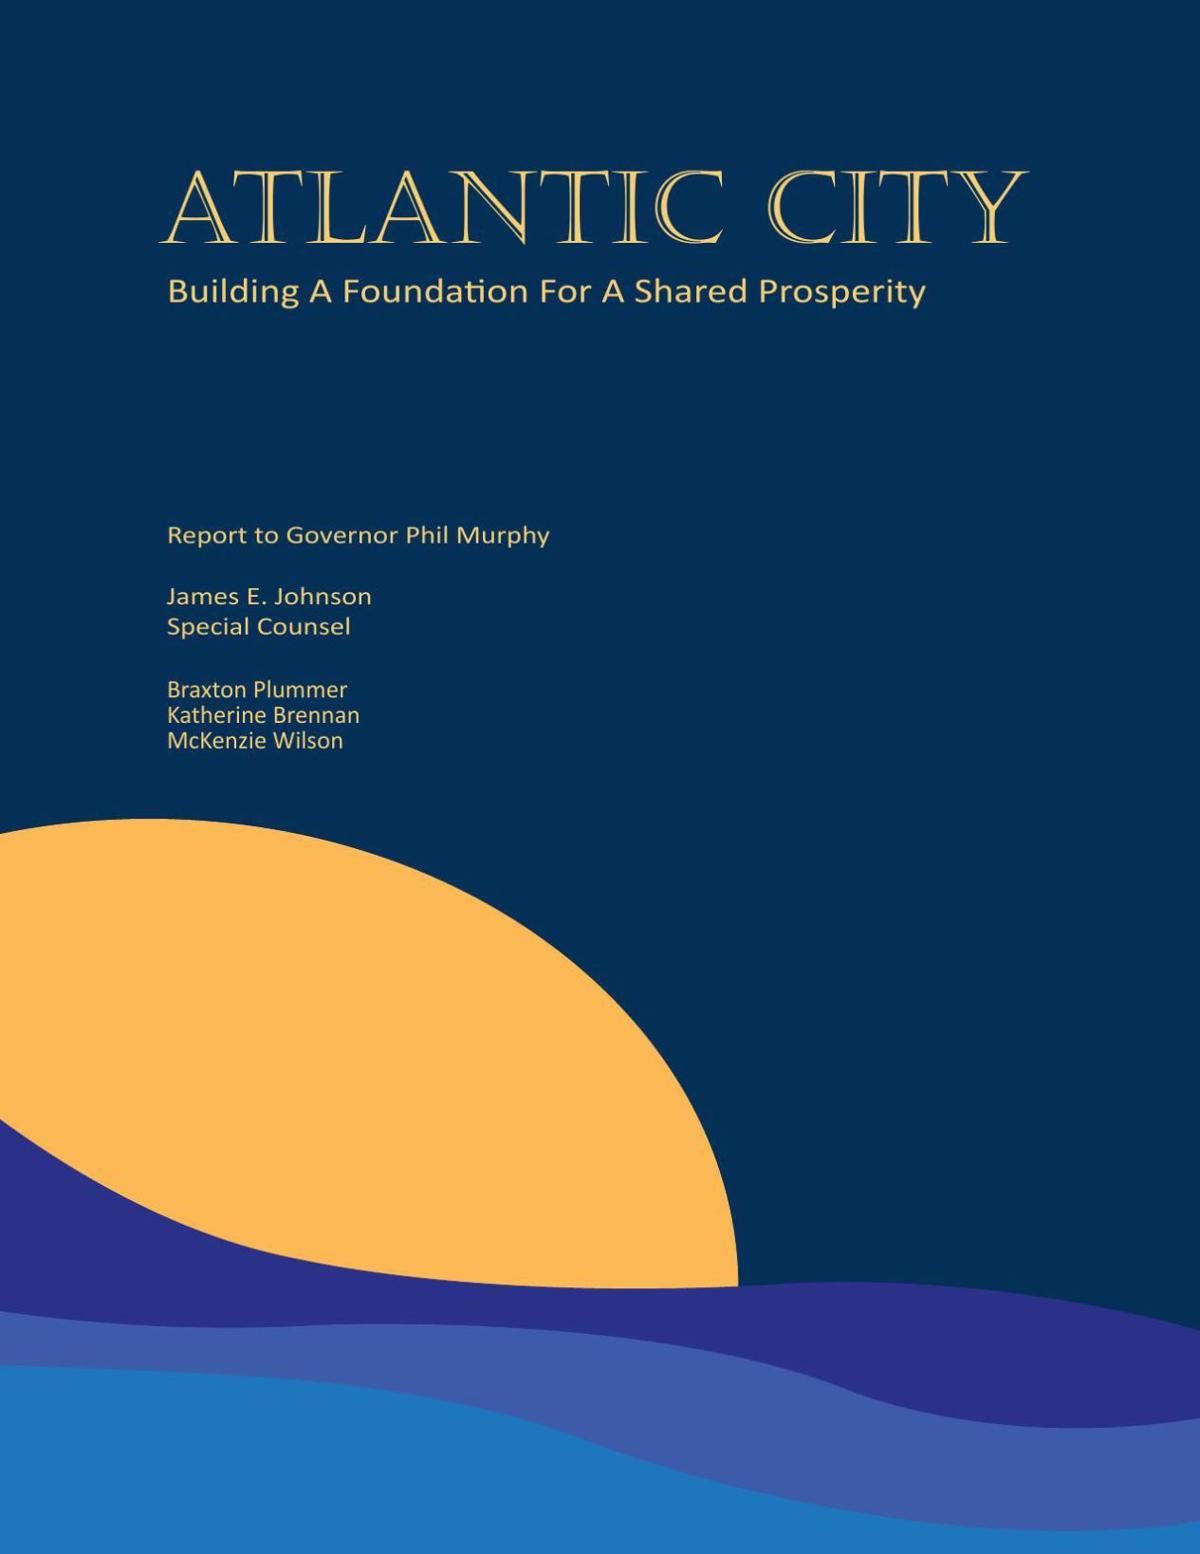 Atlantic City report